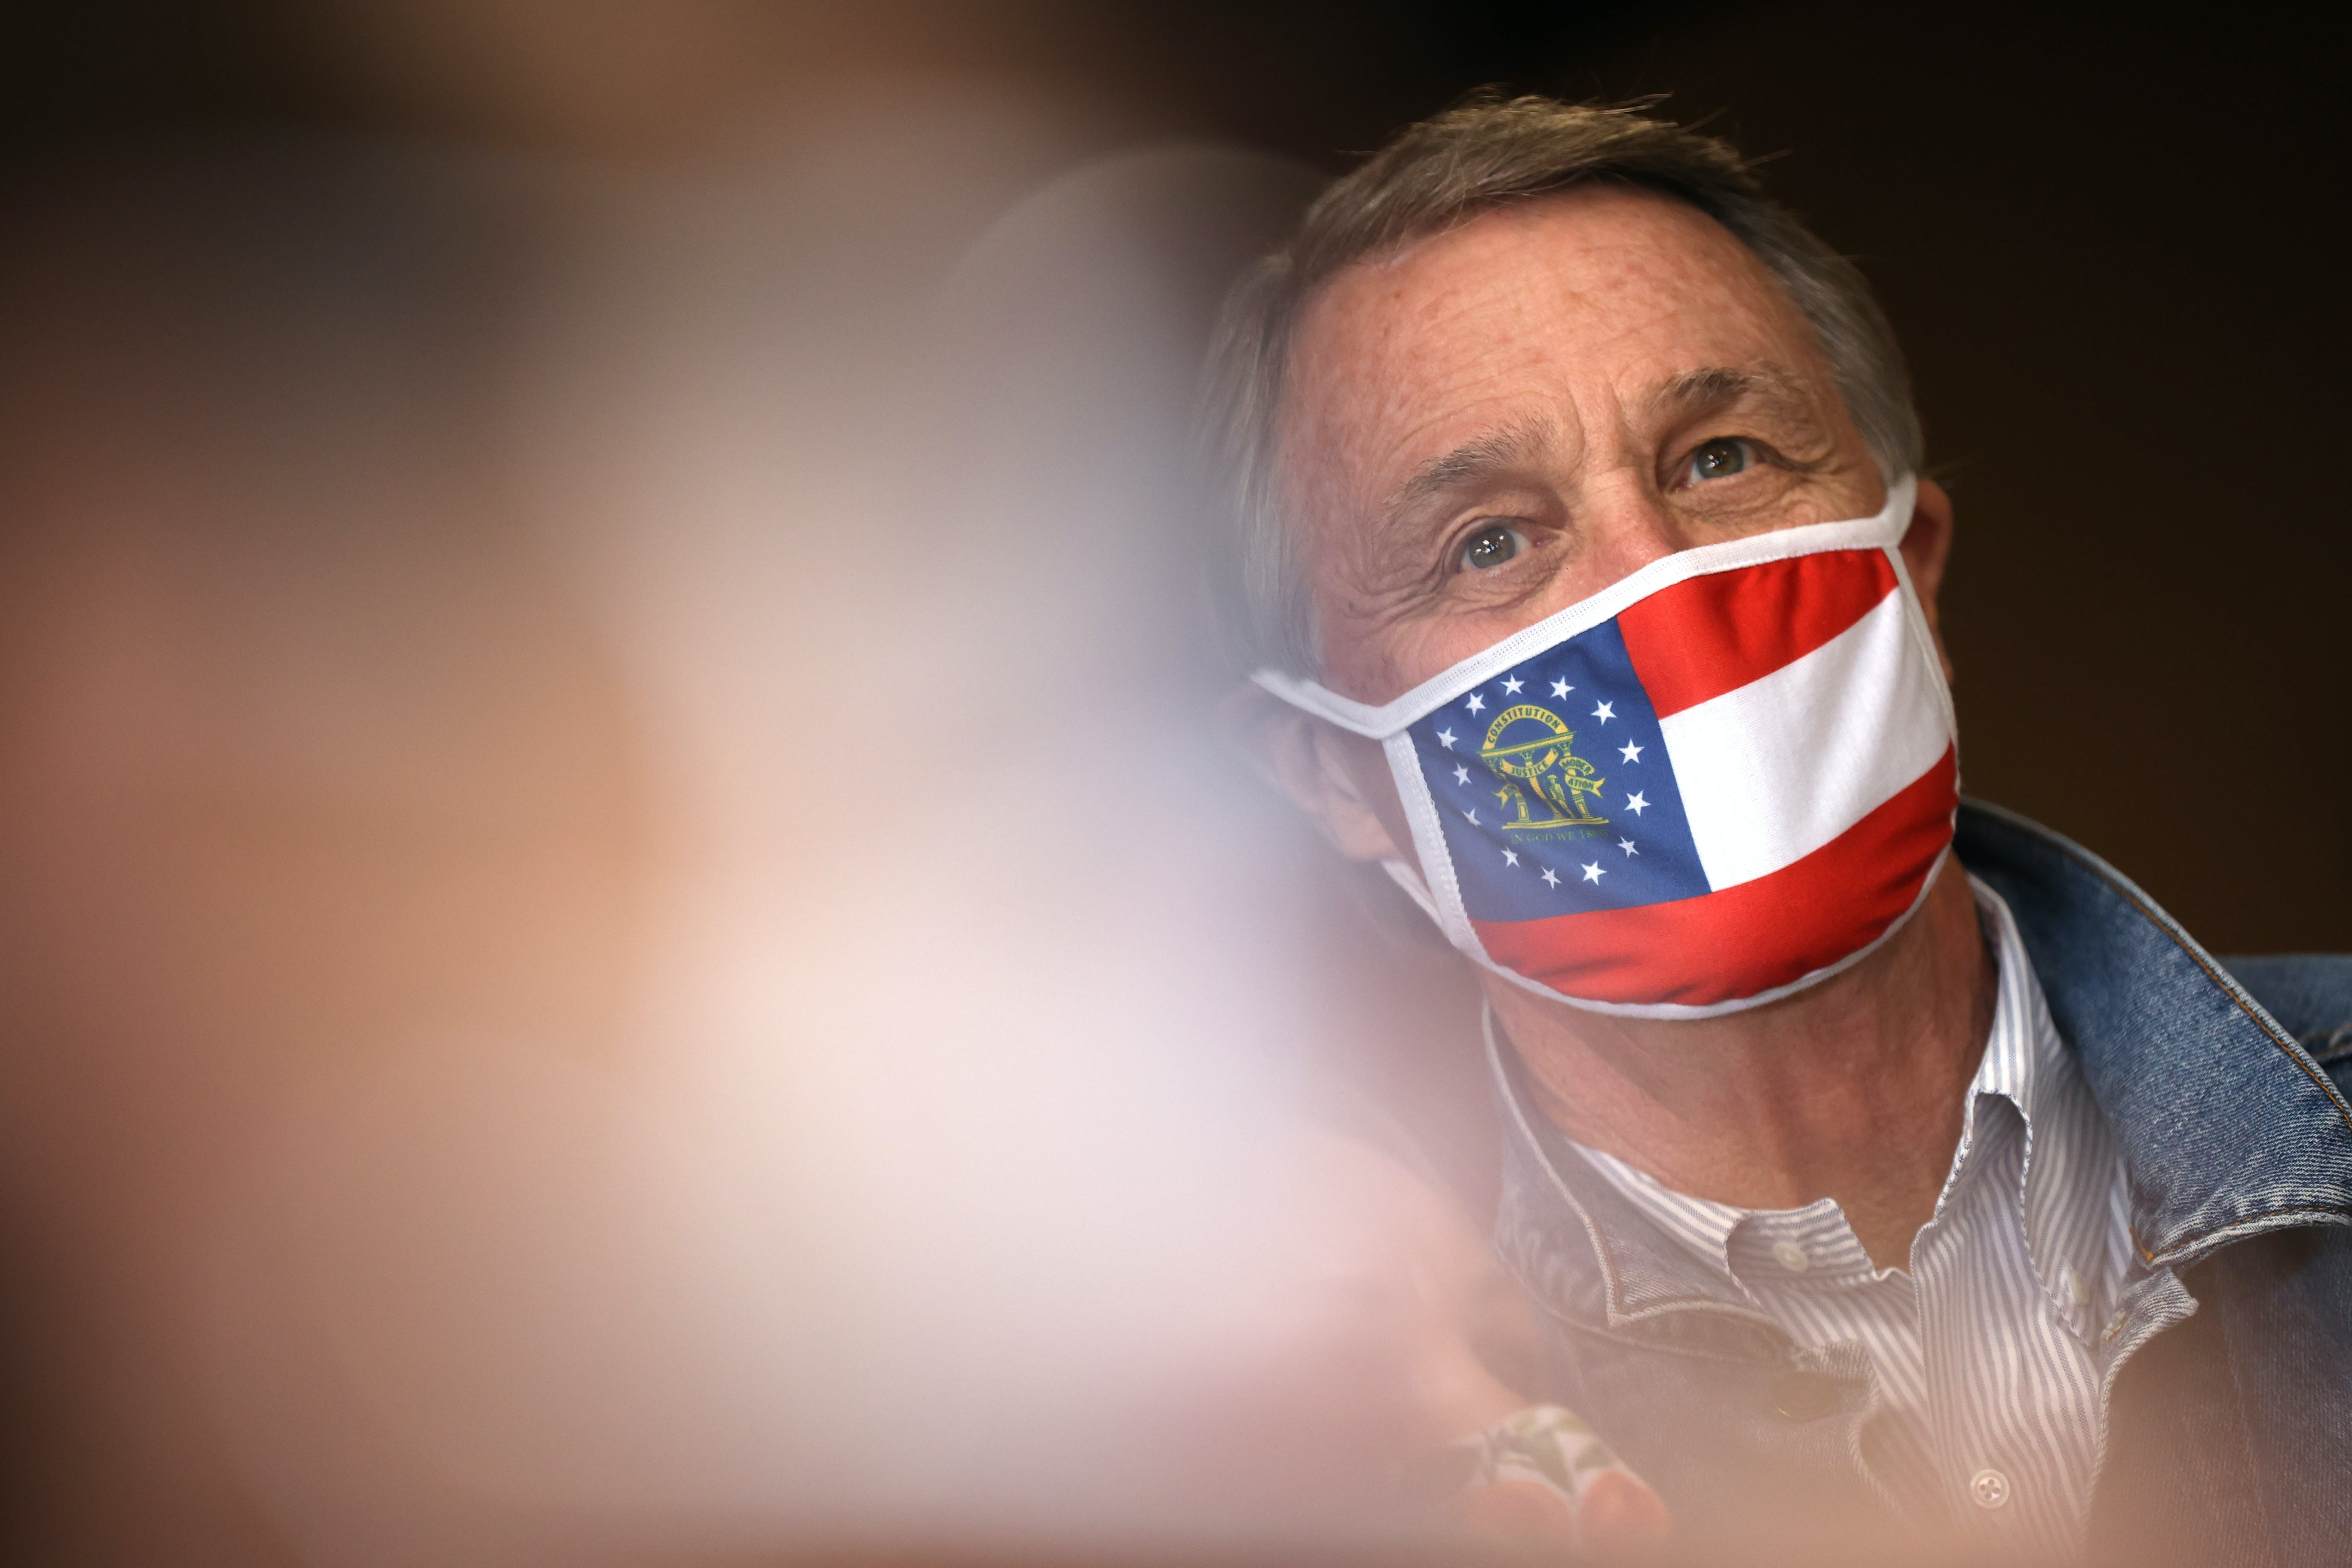 Republican senate candidate U.S. Sen. David Perdue (R-GA) looks on during a campaign event at Pot Luck Cafe on October 31, 2020 in Monroe, Georgia.